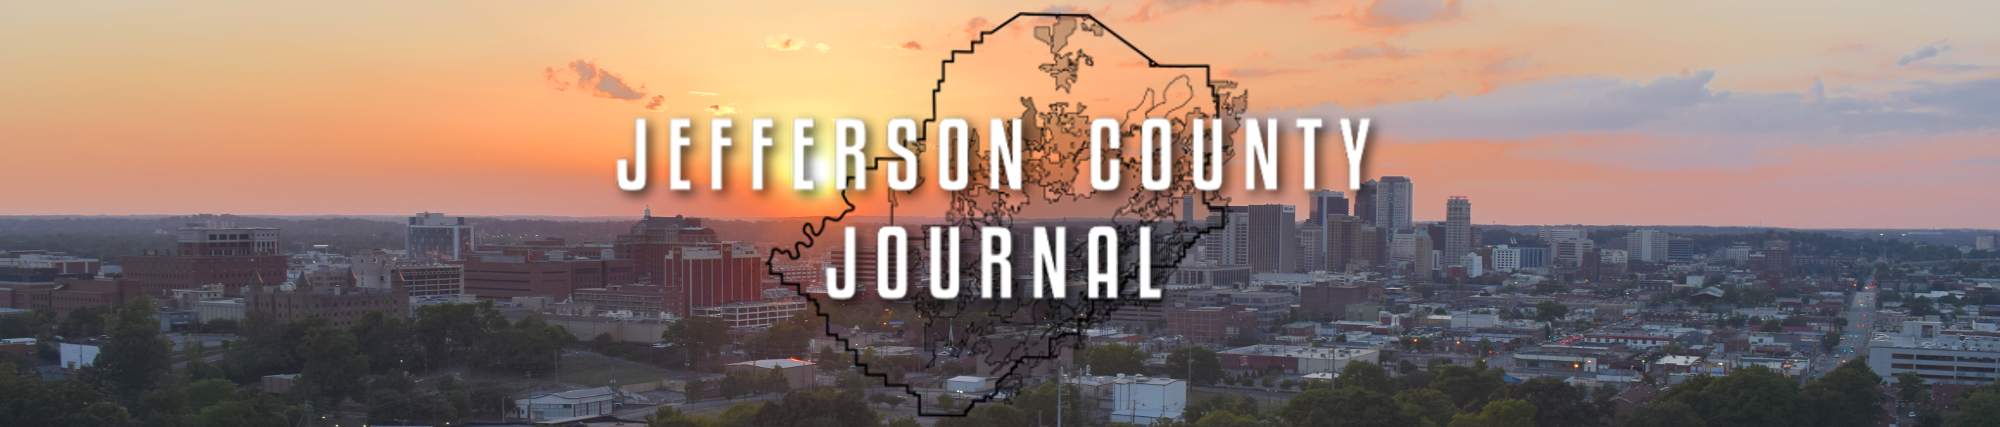 Jefferson County Journal